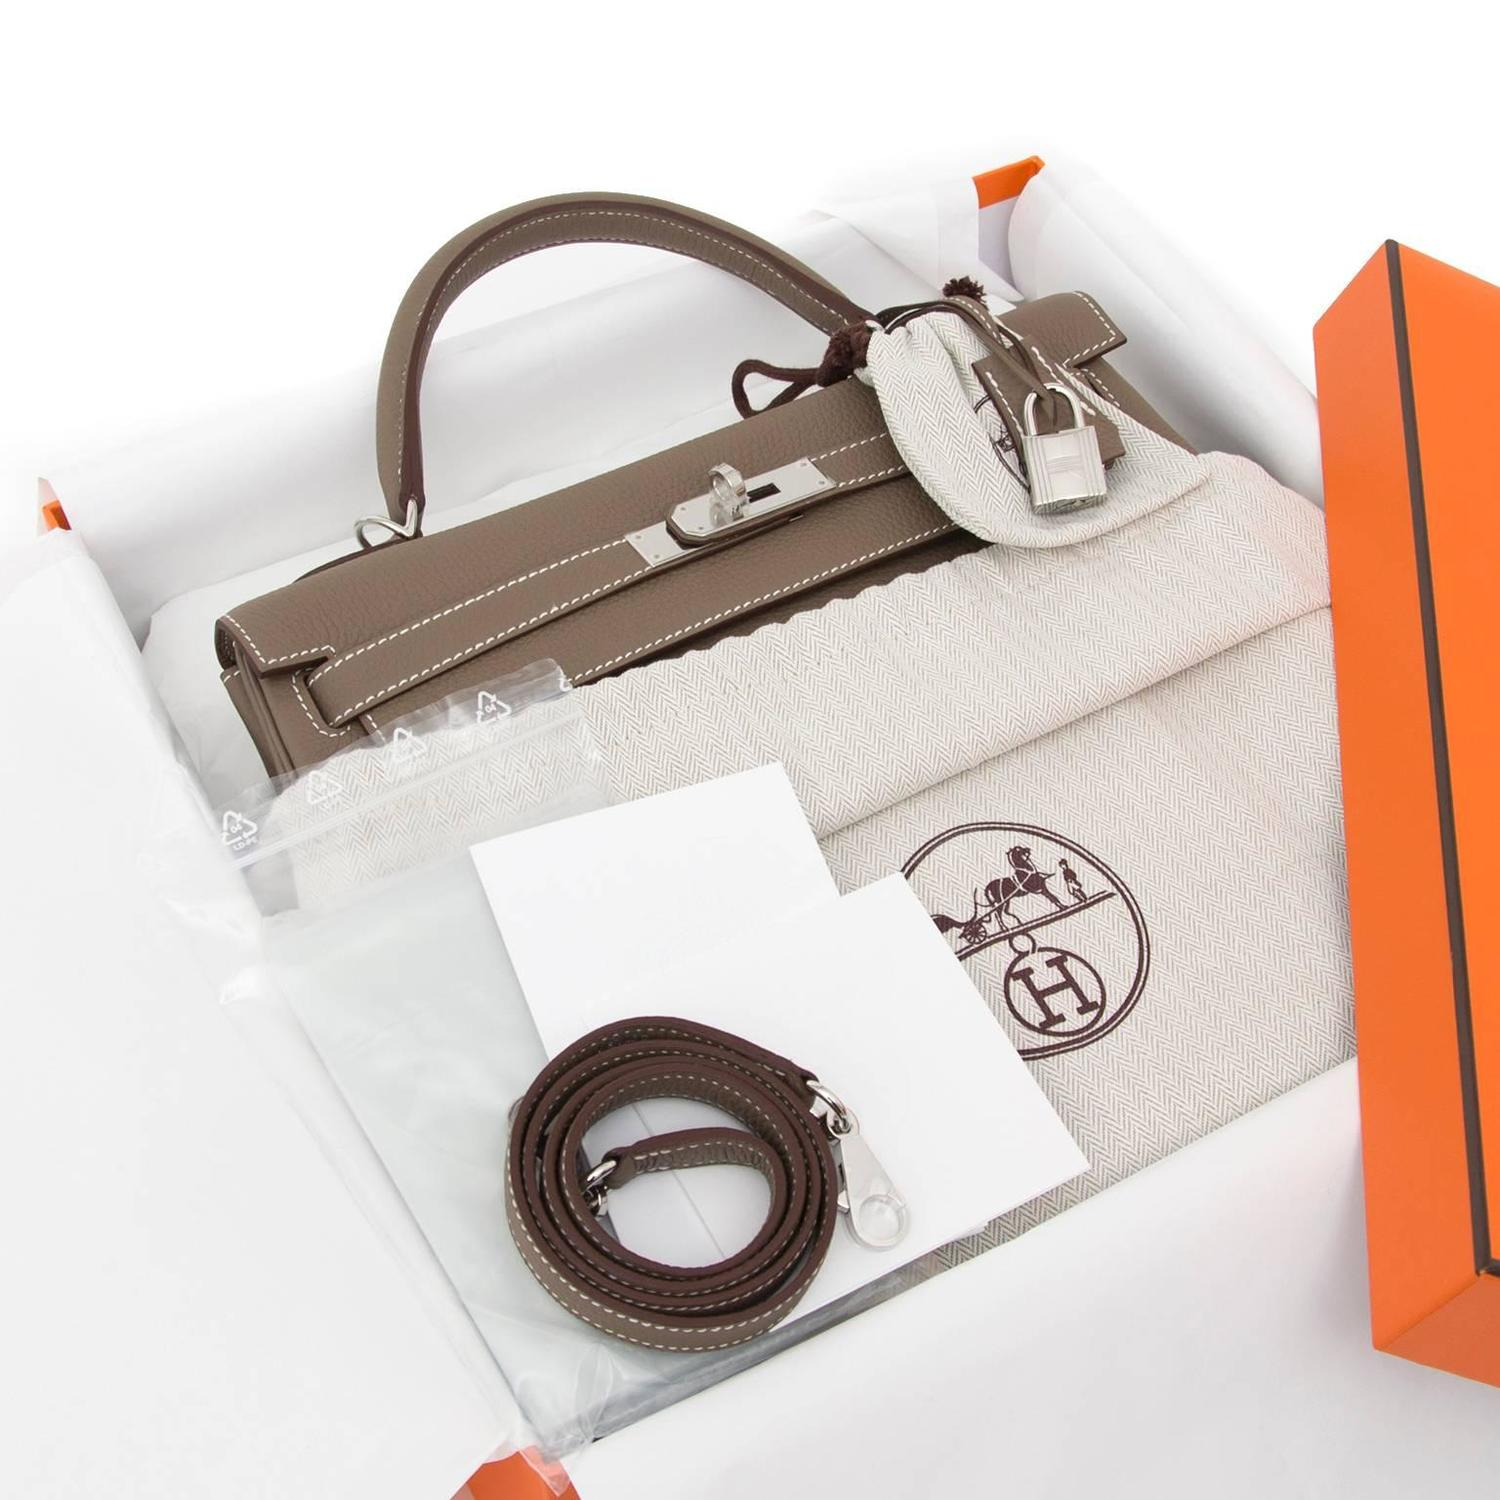 different styles of hermes bags